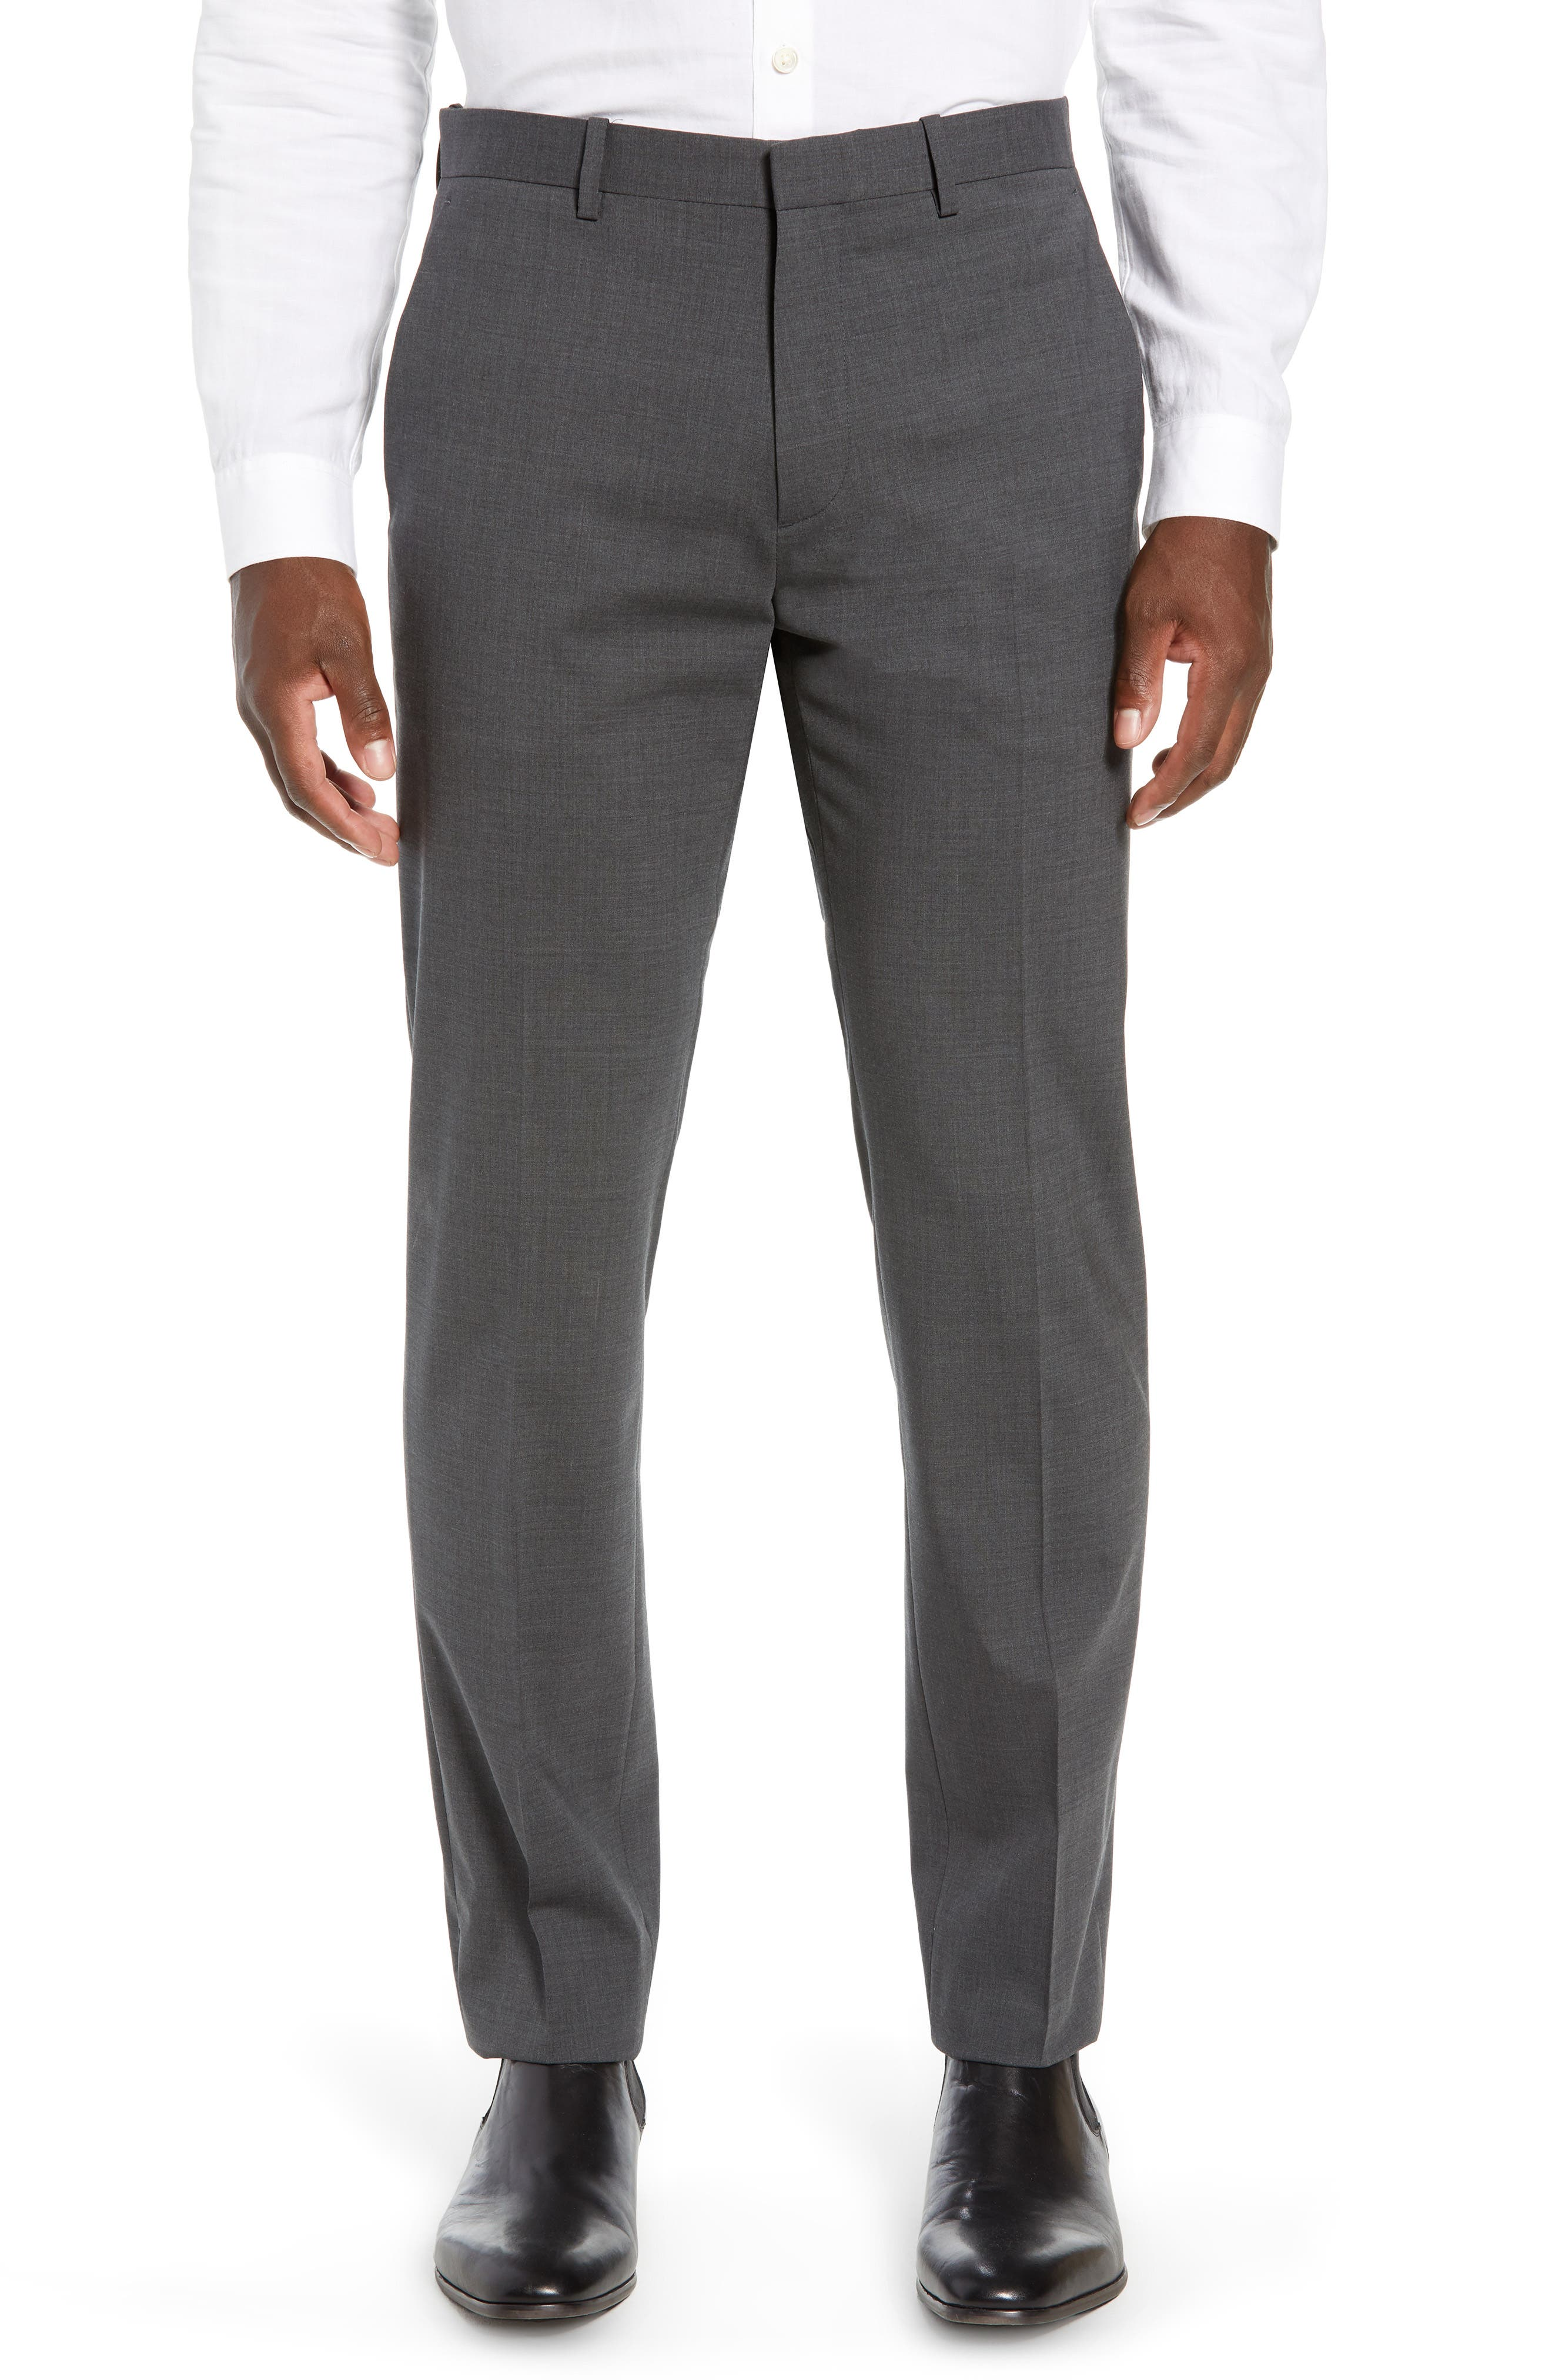 Mayer New Tailor 2 Wool Trousers,                             Main thumbnail 1, color,                             CHARCOAL